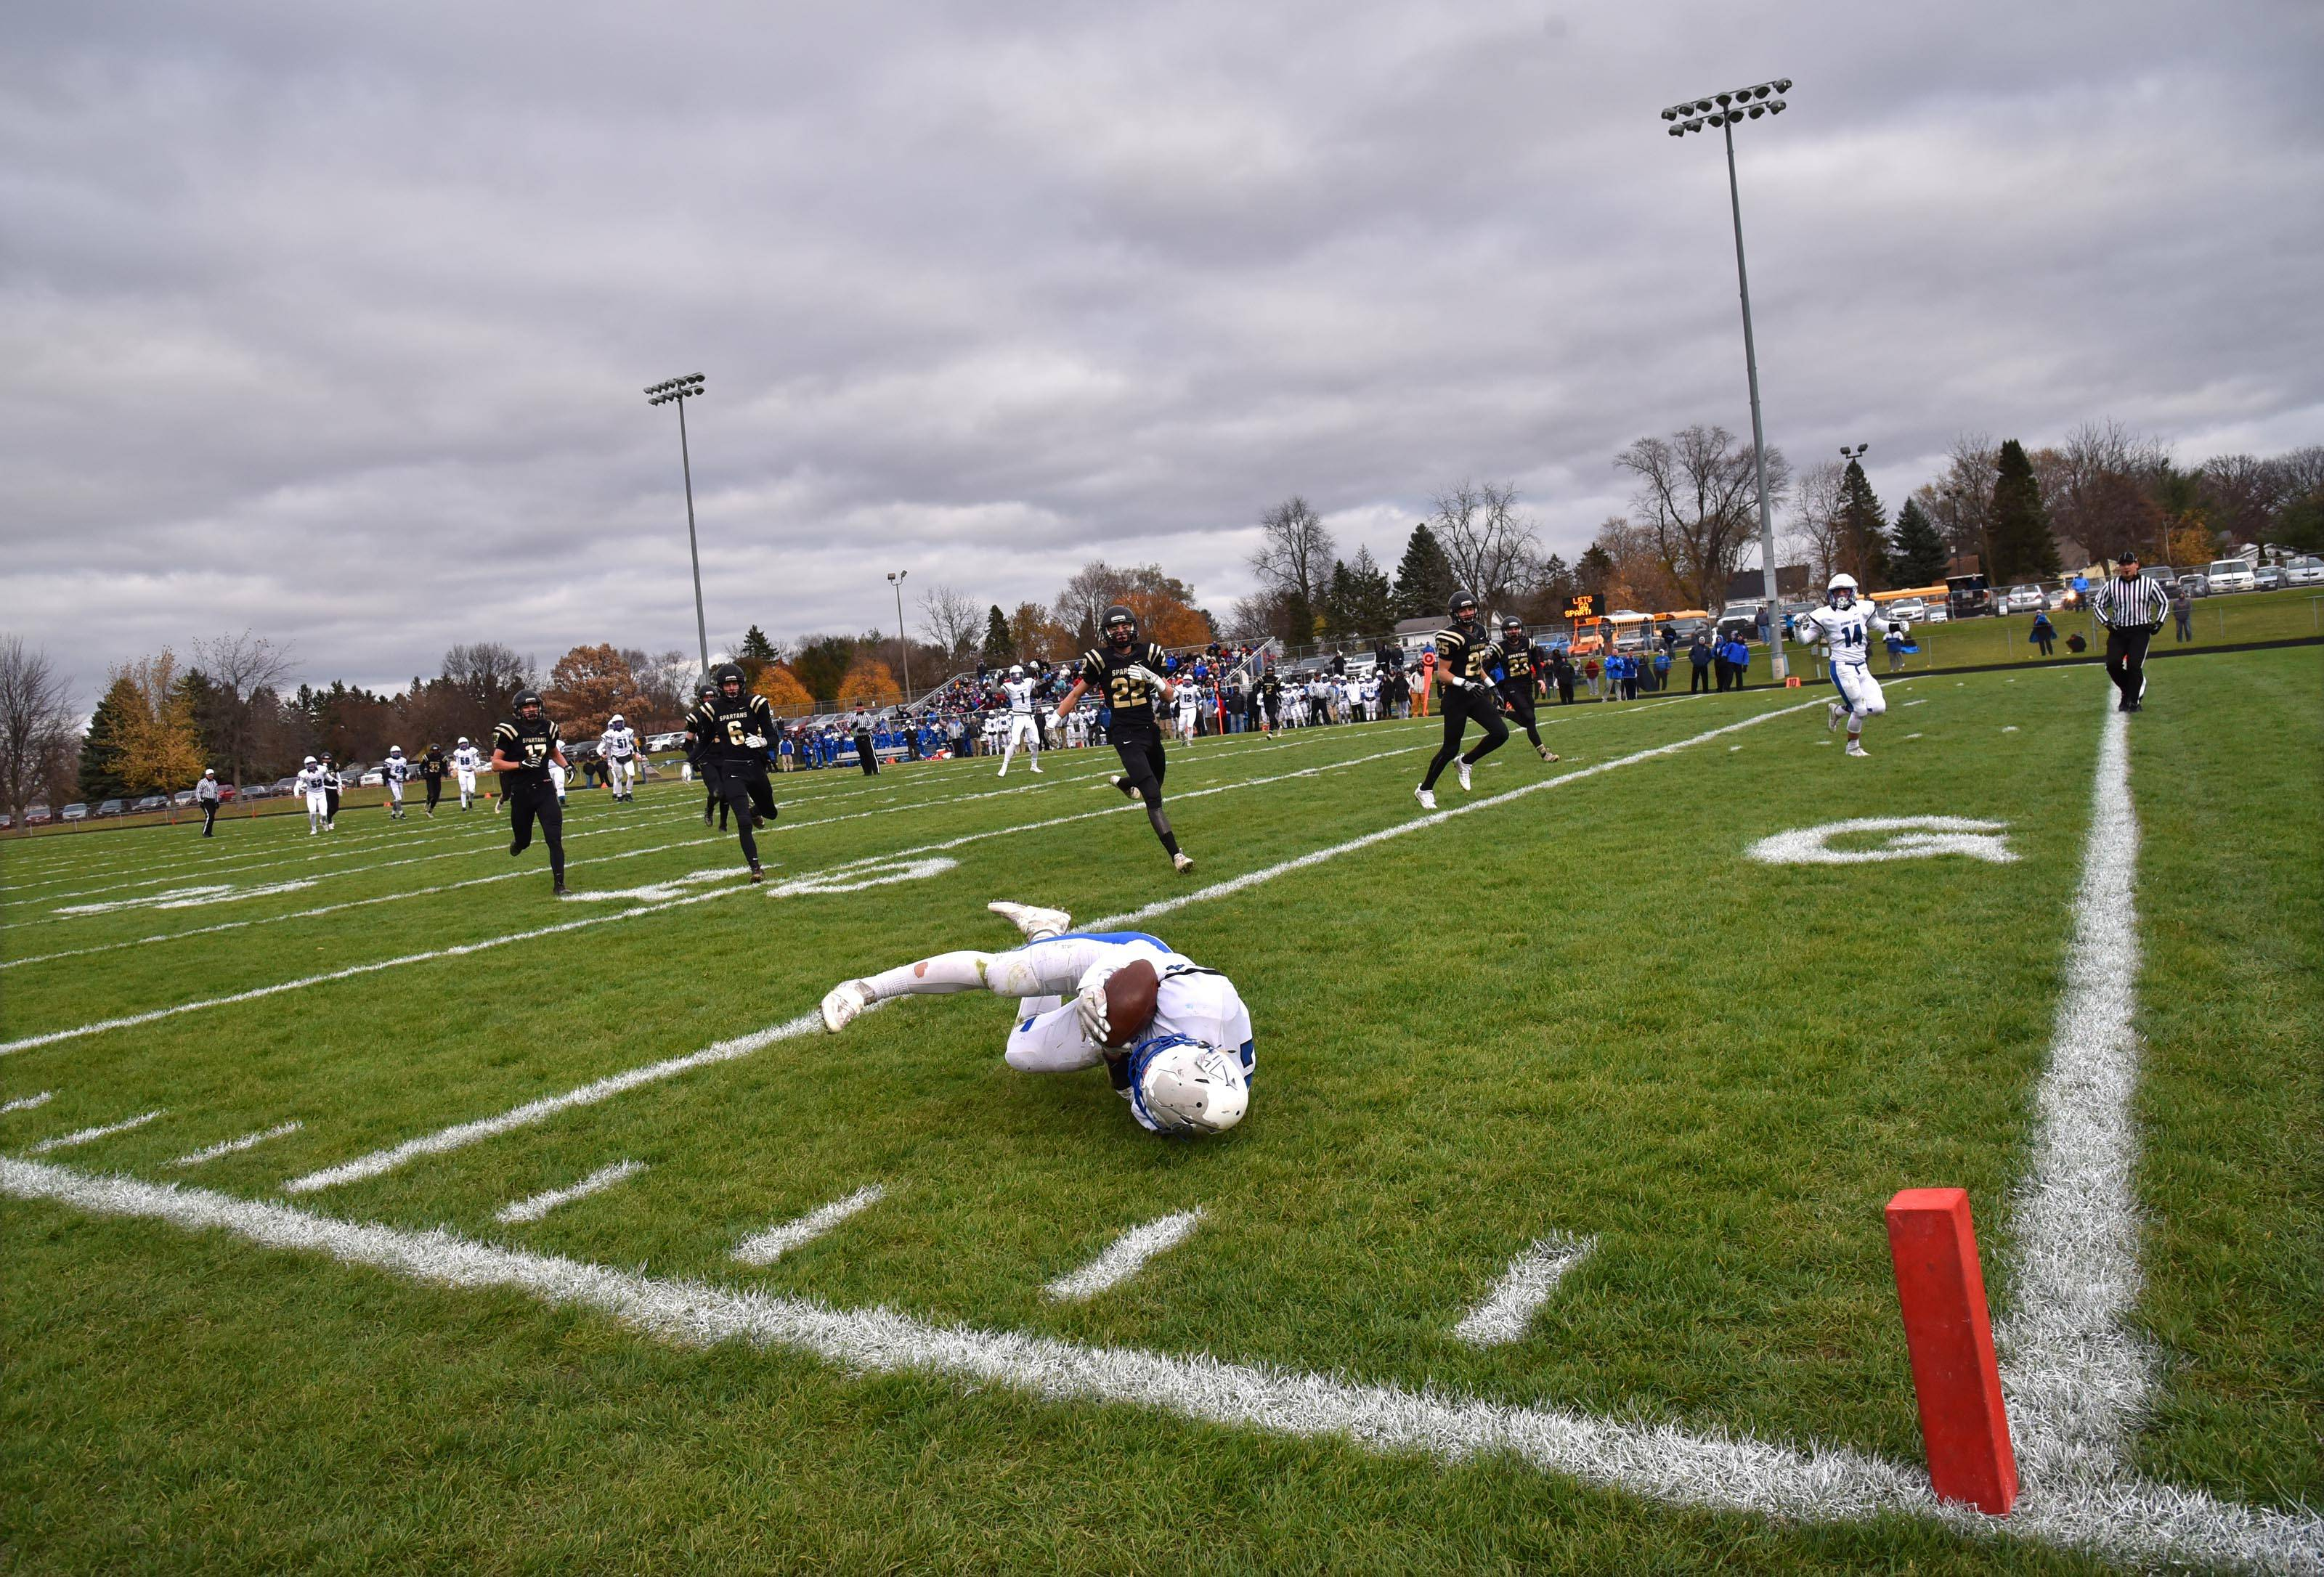 Vernon Hills' Nick Marras makes a diving catch just short of the goal line against Sycamore Saturday in the Class 5A football state semifinals in Sycamore. The Cougars scored on the next play.